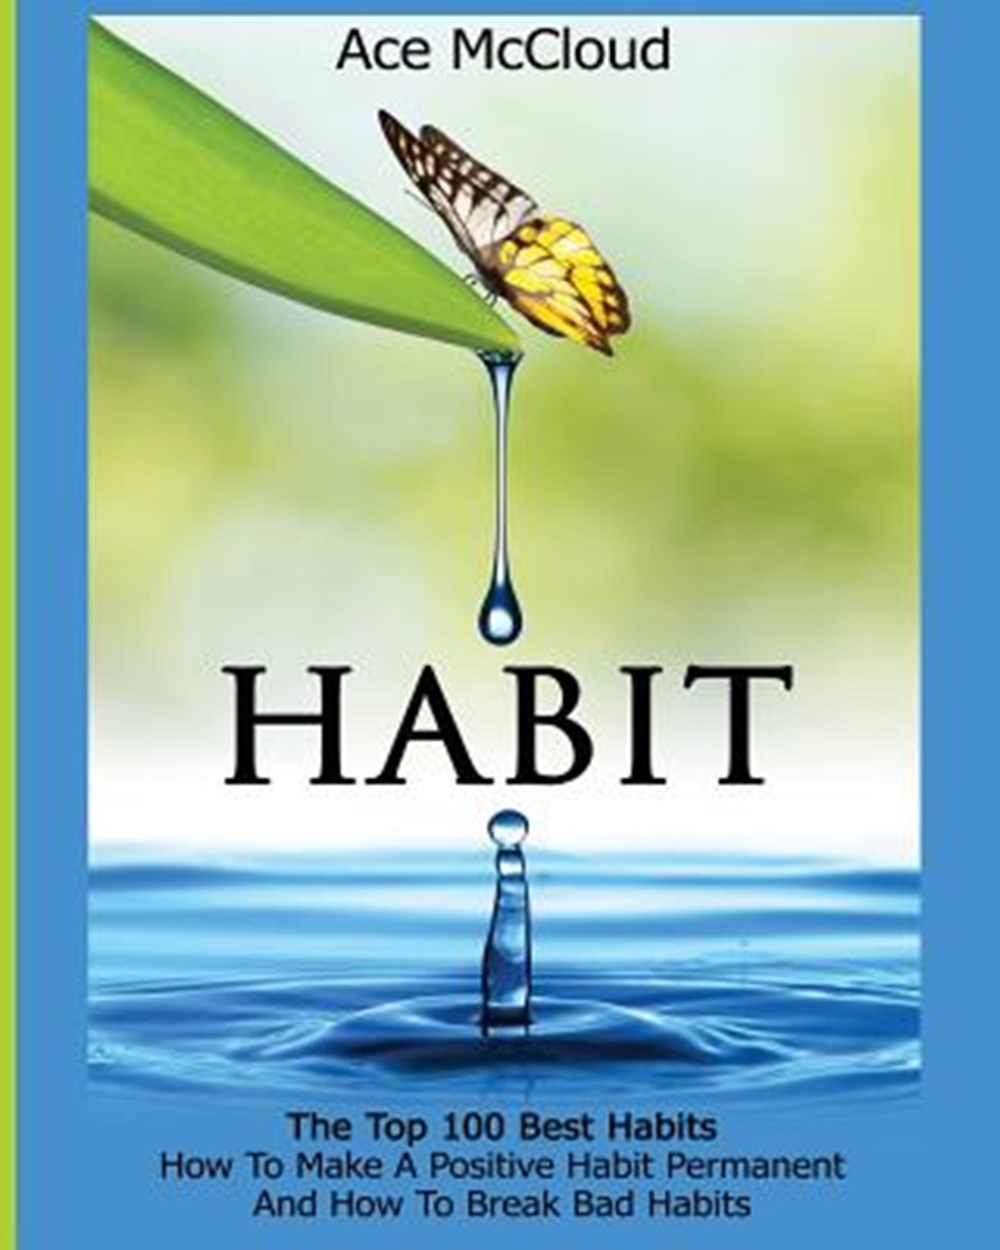 Habit The Top 100 Best Habits: How To Make A Positive Habit Permanent And How To Break Bad Habits